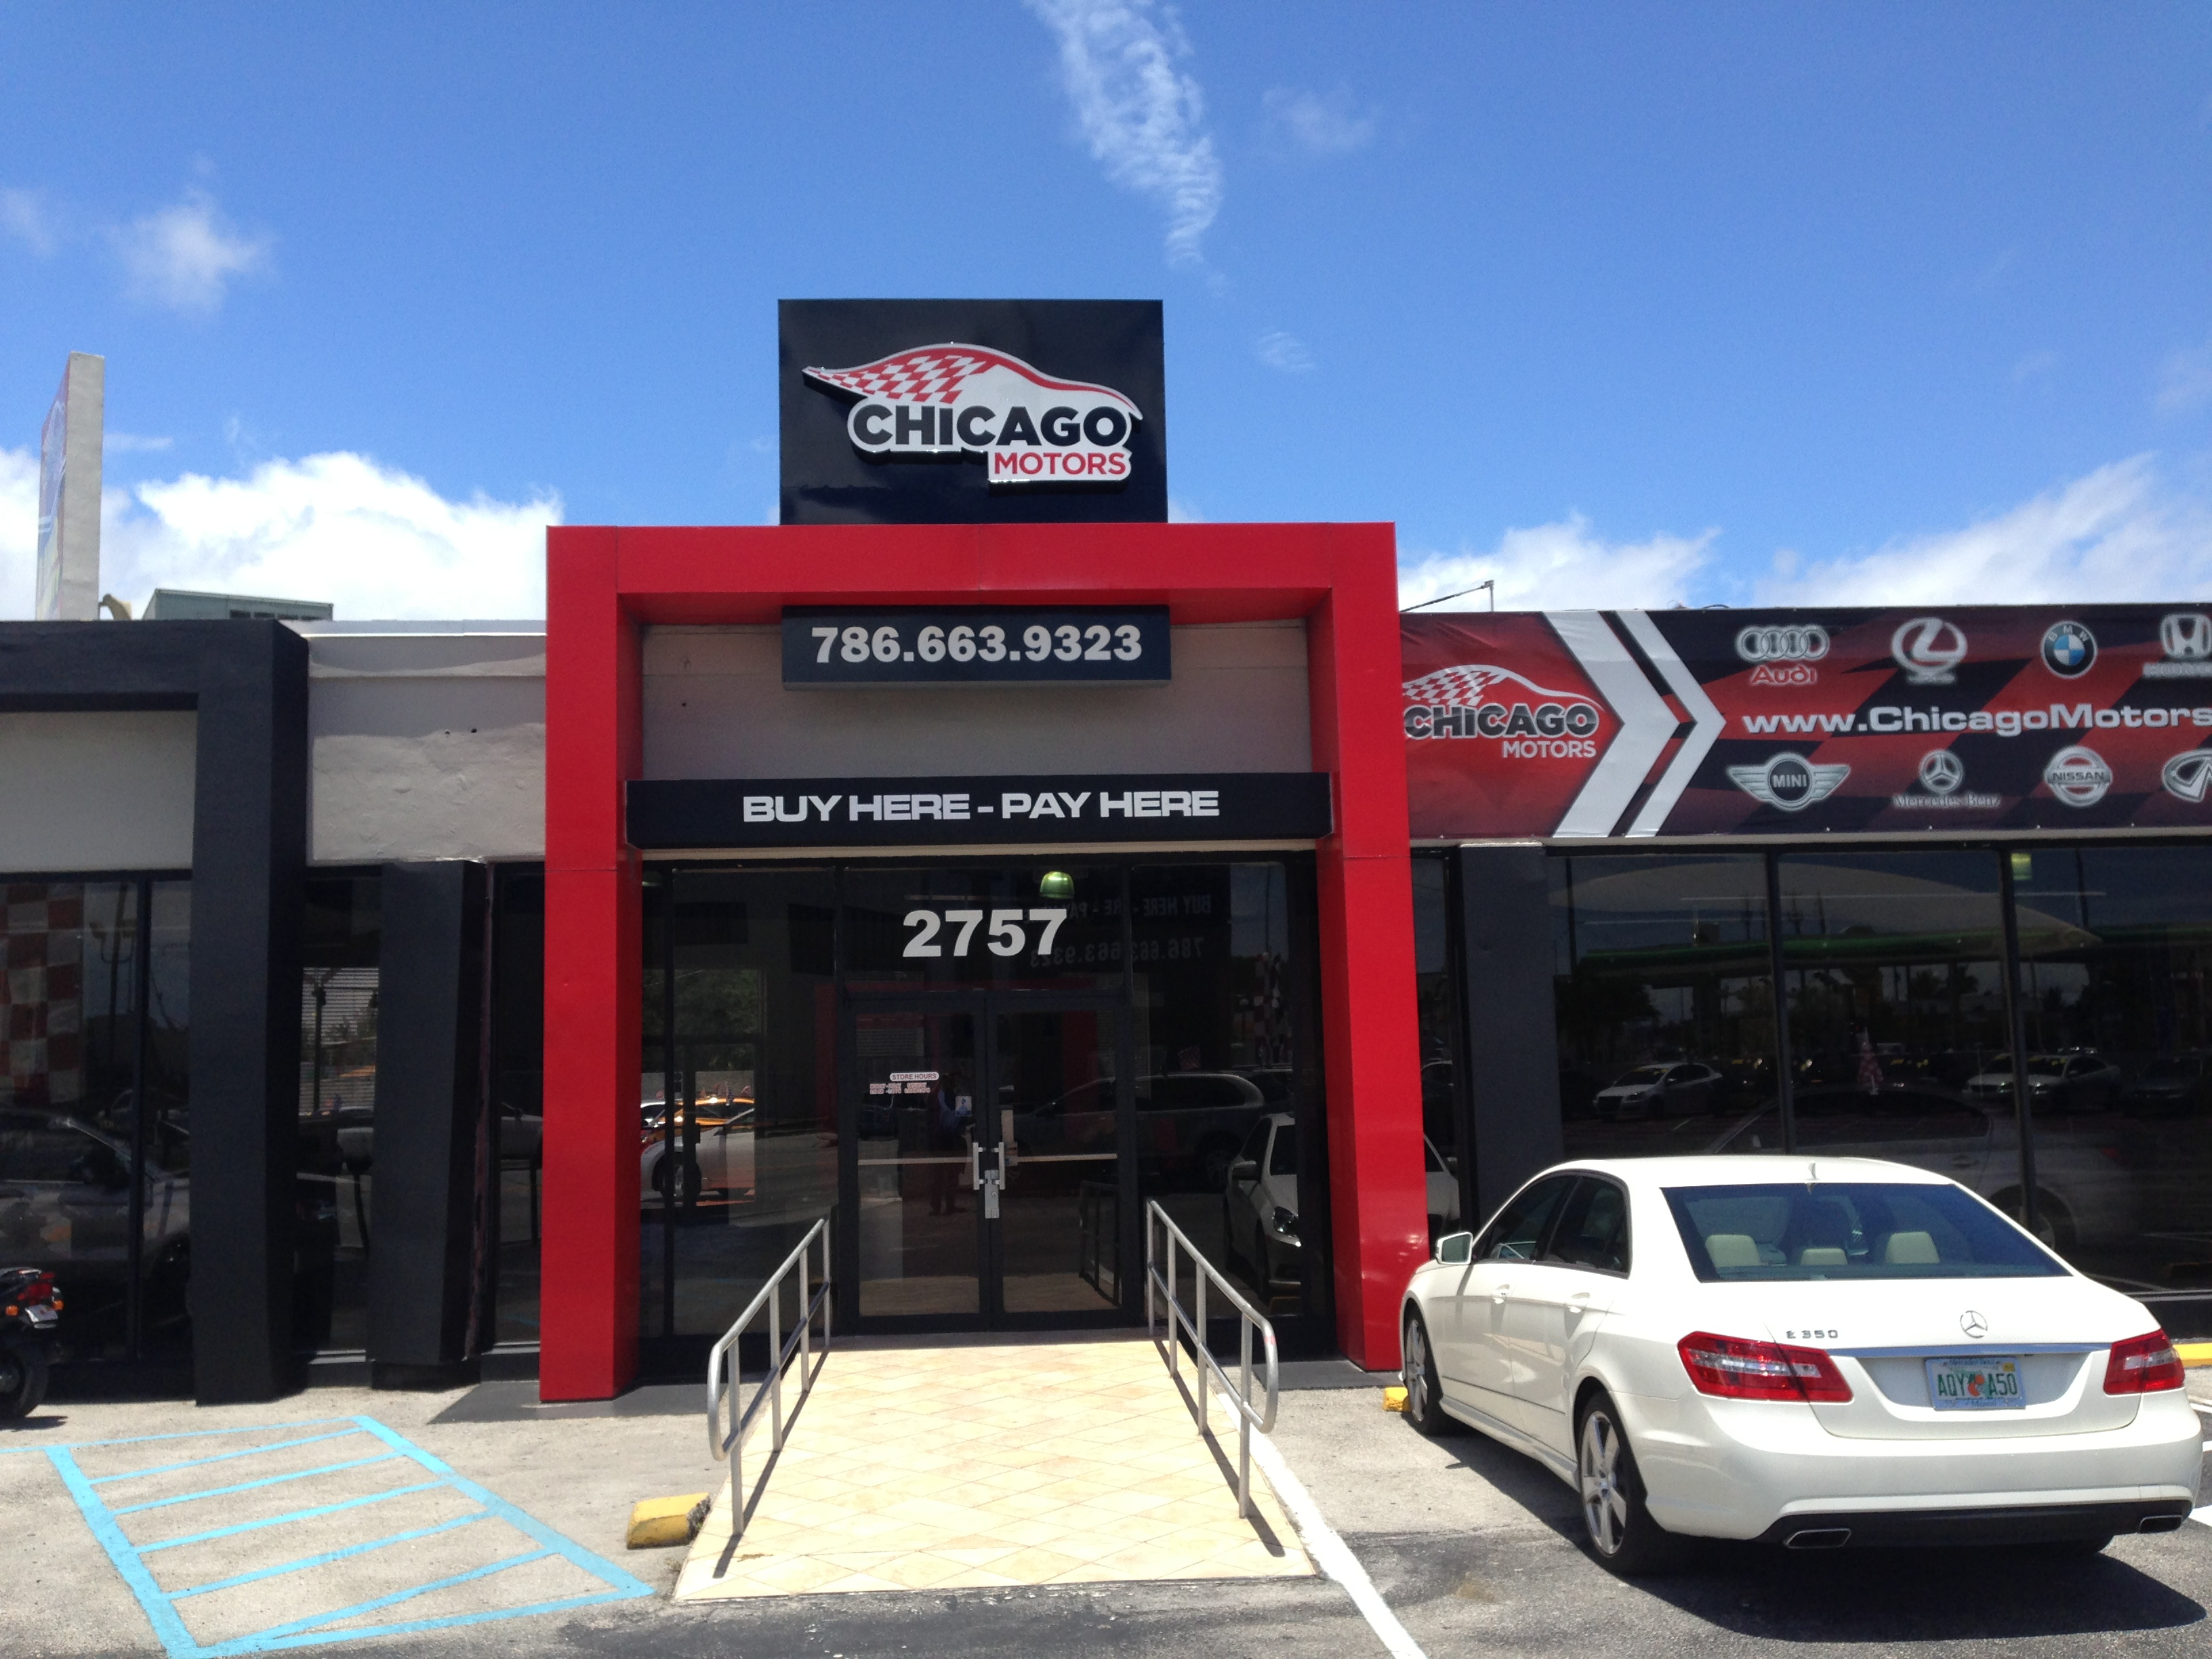 Buy Here Pay Here Miami >> Chicago Motors 2757 Nw 36th St Miami Fl 33142 Yp Com